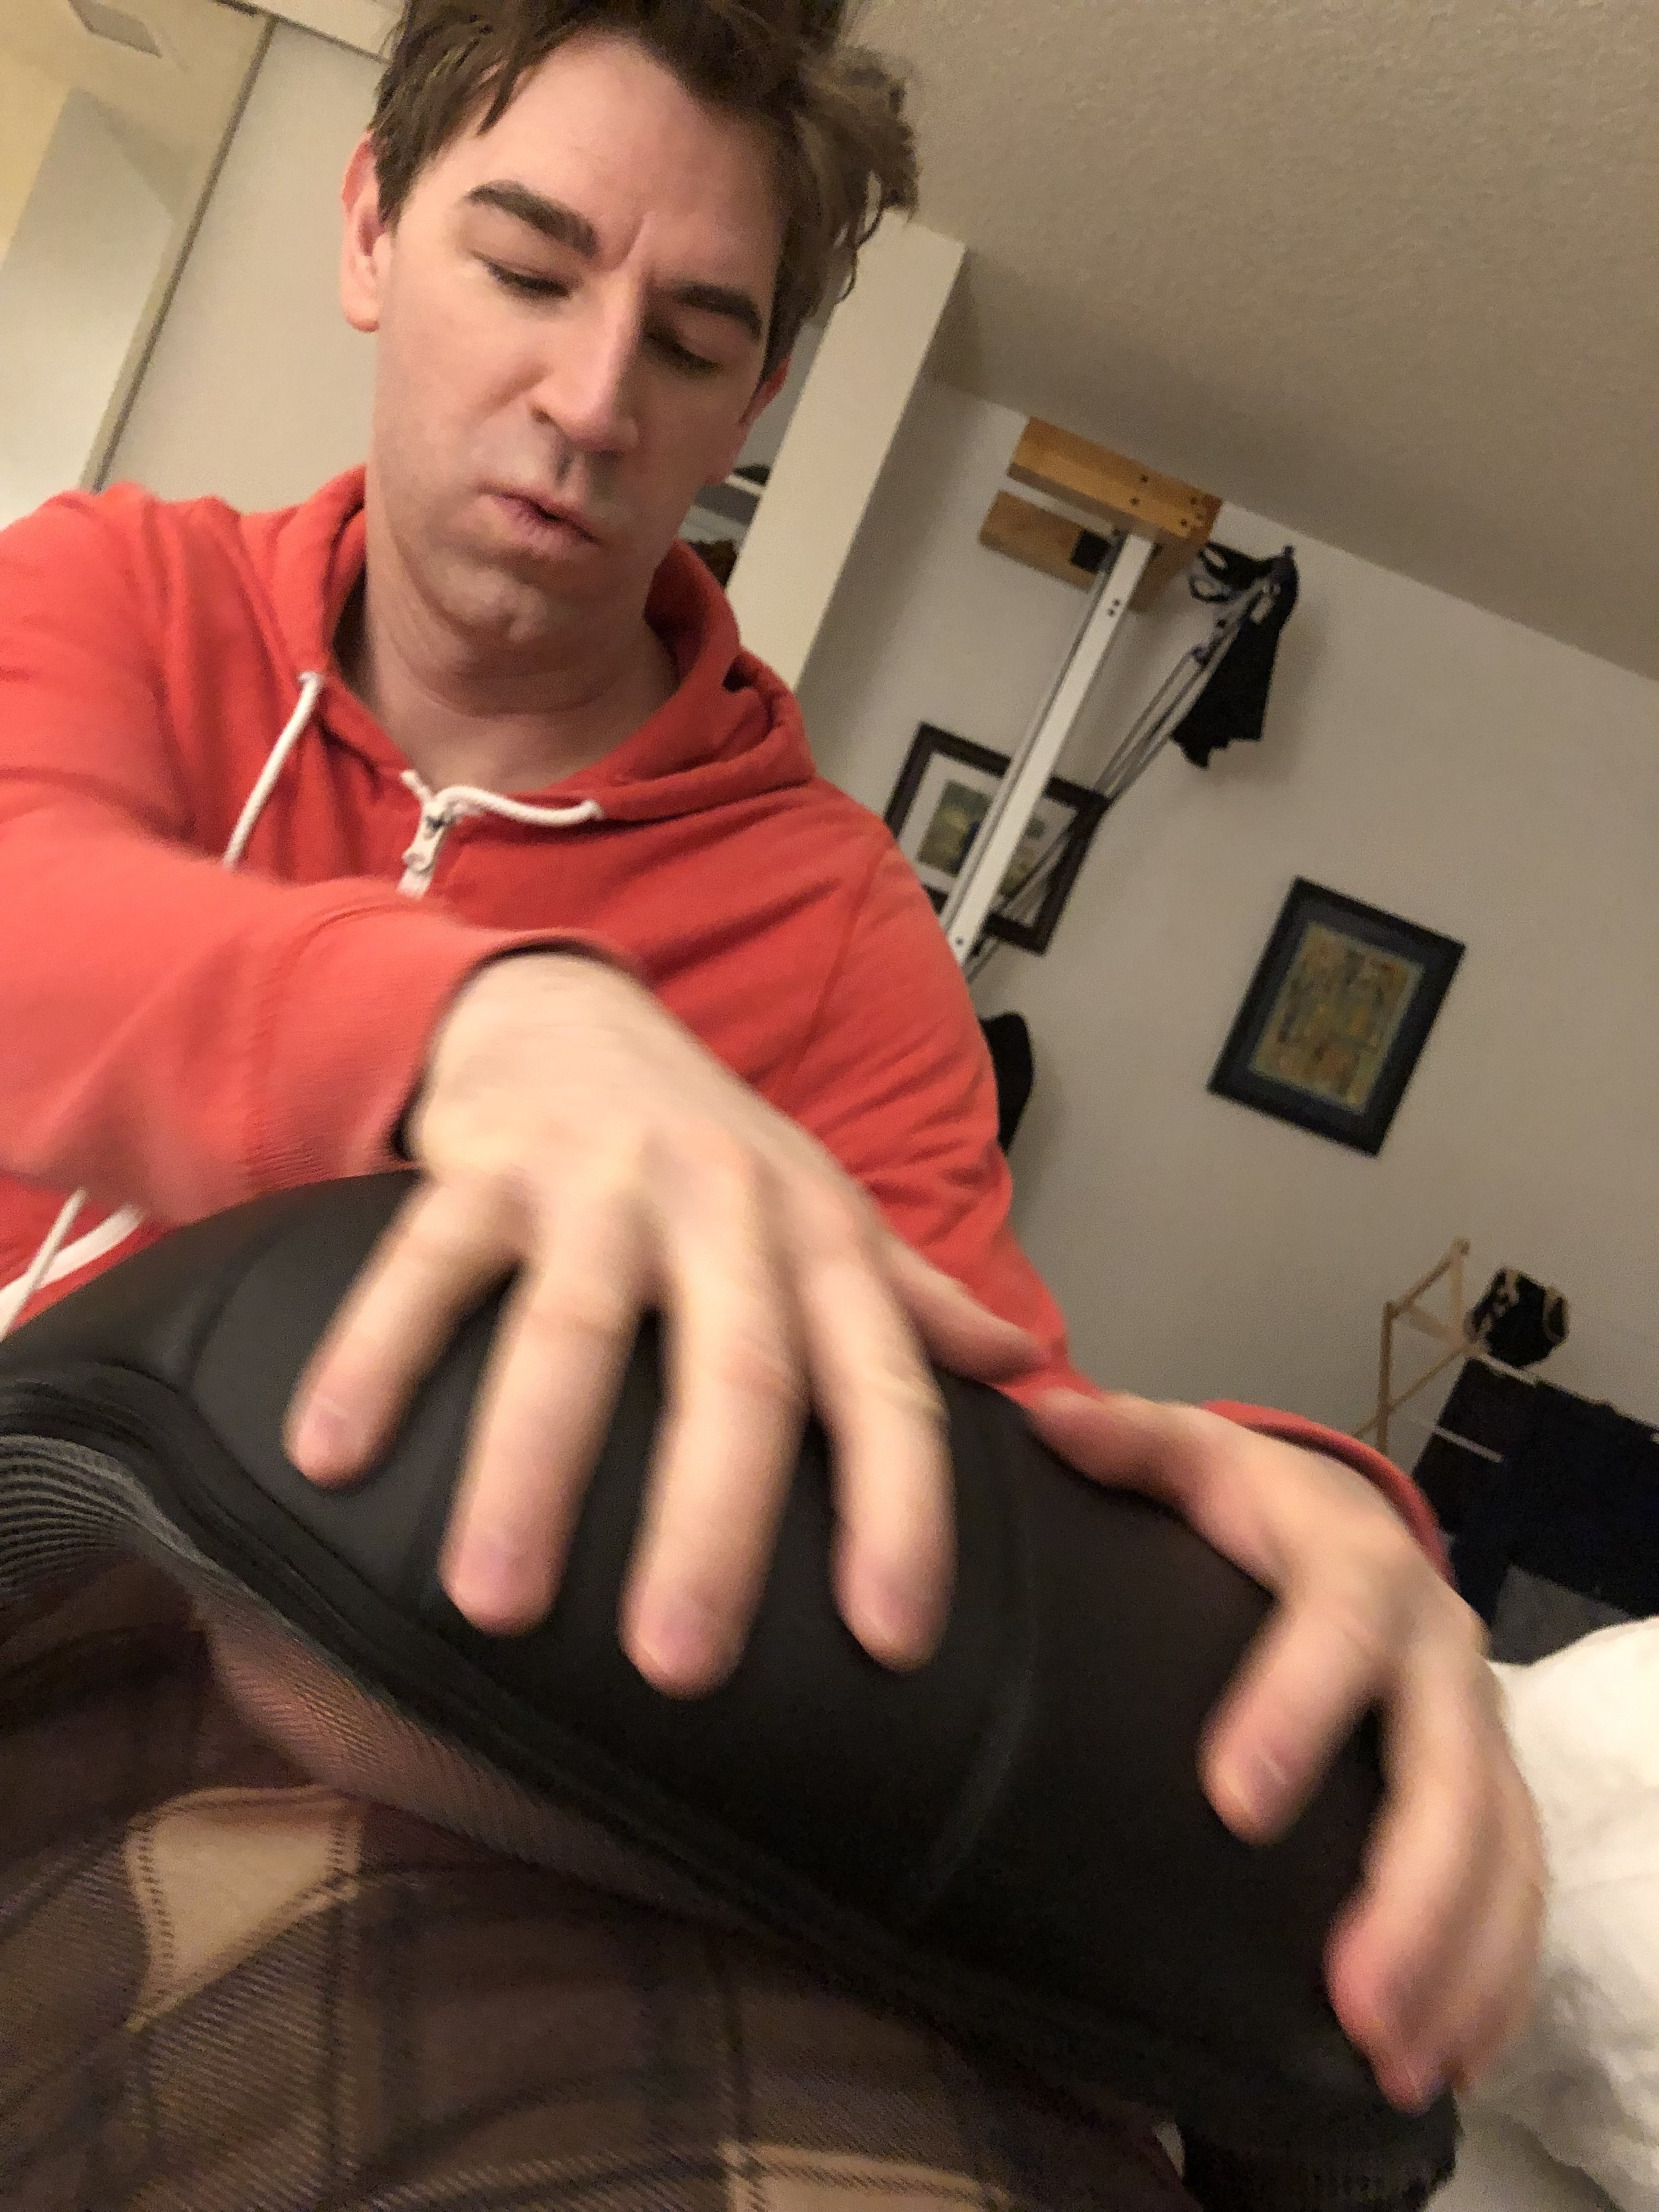 Cory massaging my injection site. First layer: heating pad. Second layer: fancy massager.